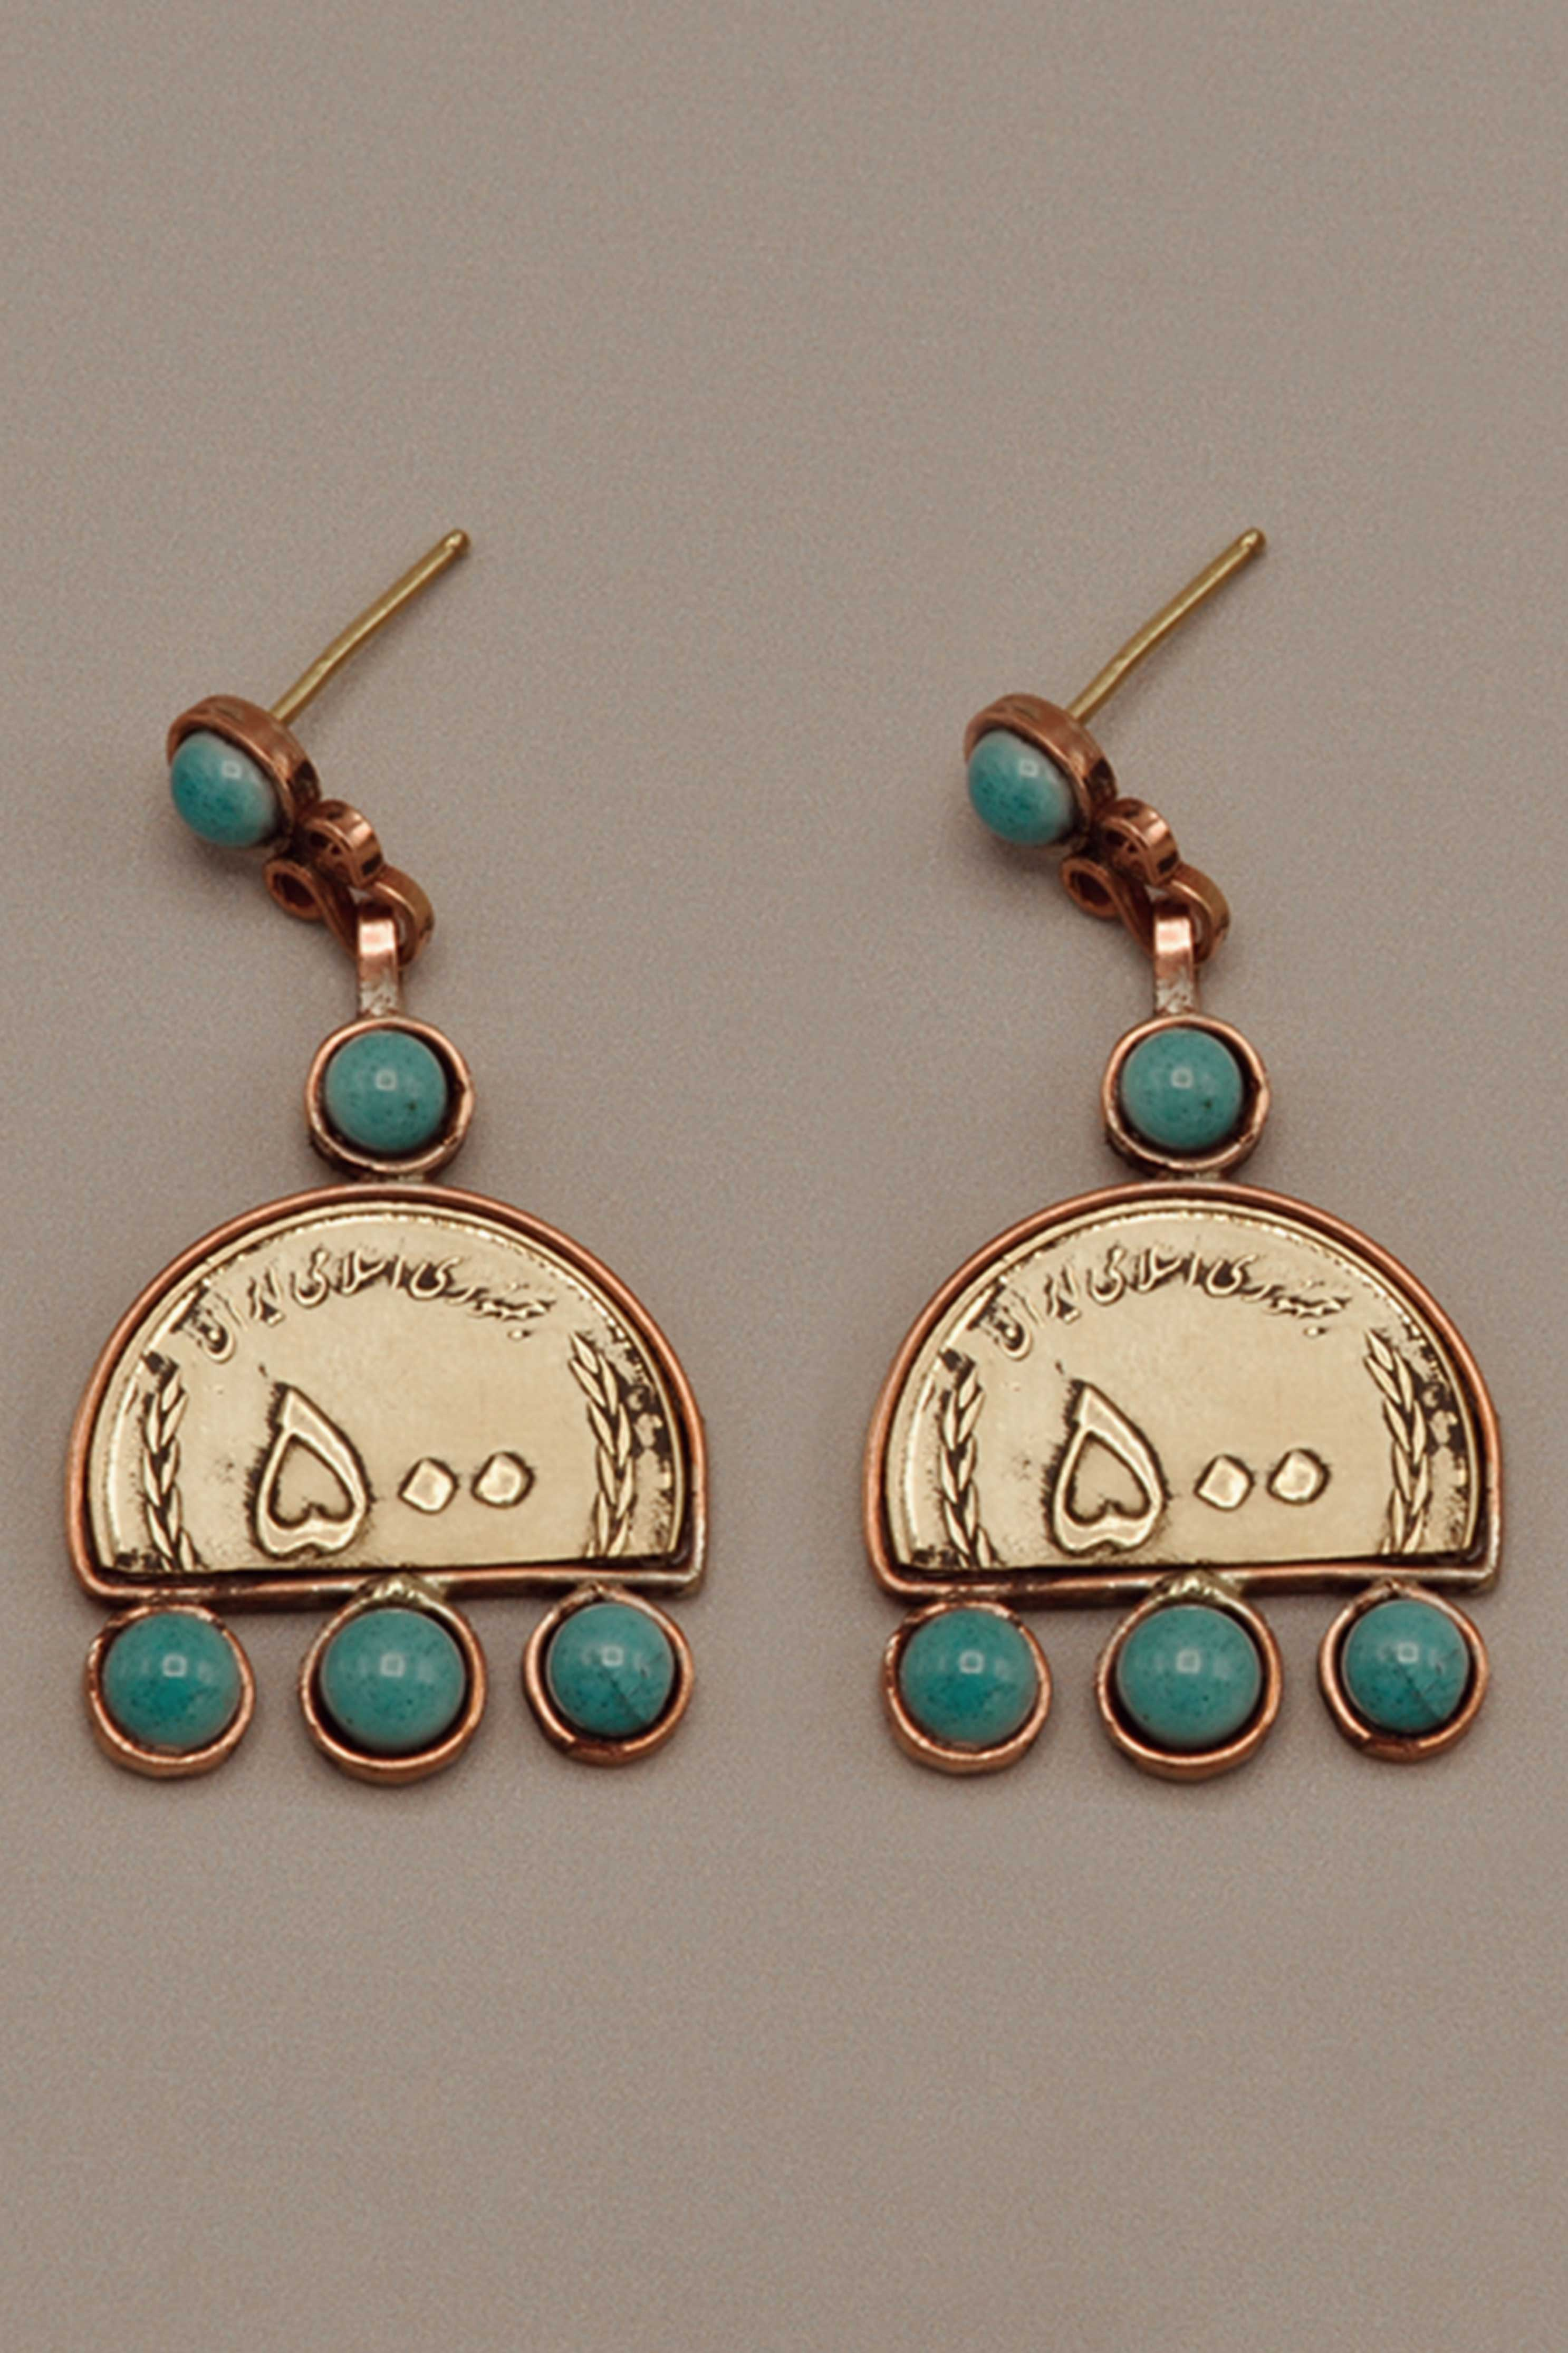 PERSIA EARRINGS | Women's Online Shopping | CHICLEFRIQUE